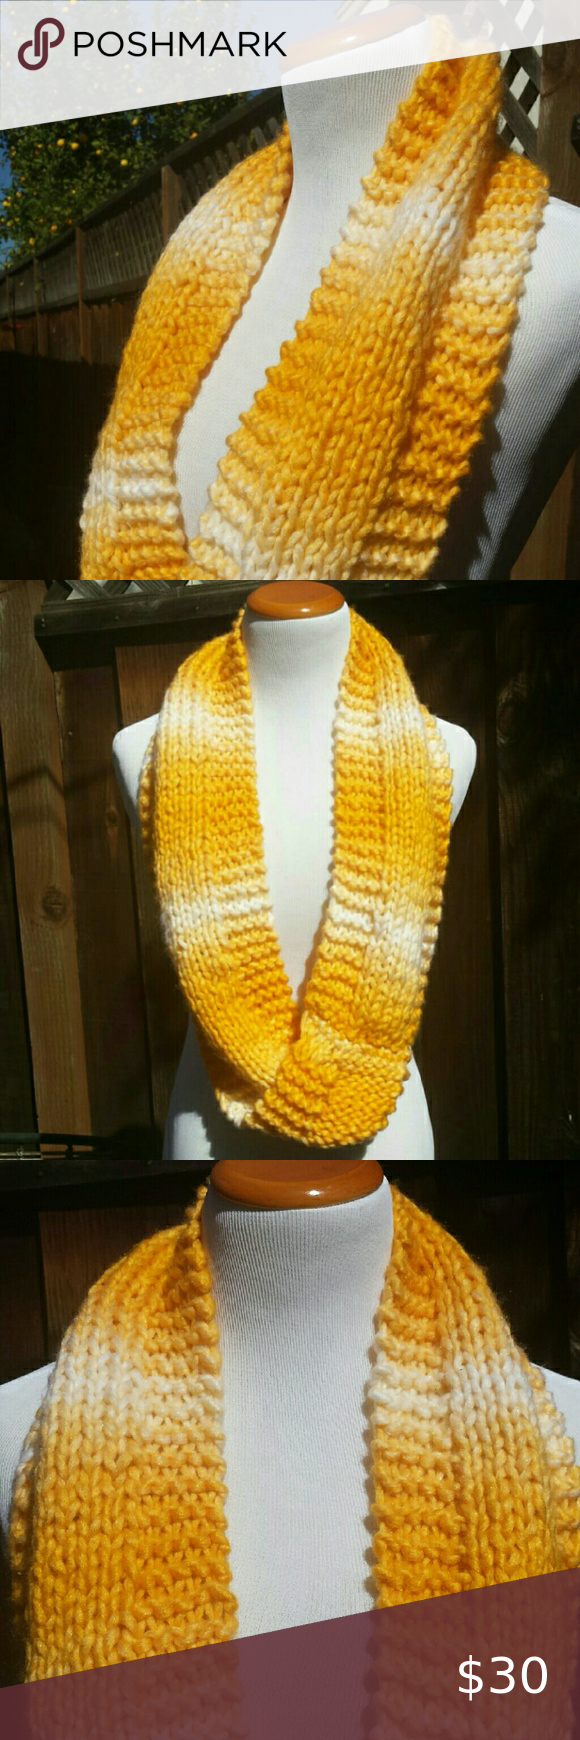 Photo of Handmade Vibrant Yellow Infinity Scarf New Handmade by my mother in law, this lo…